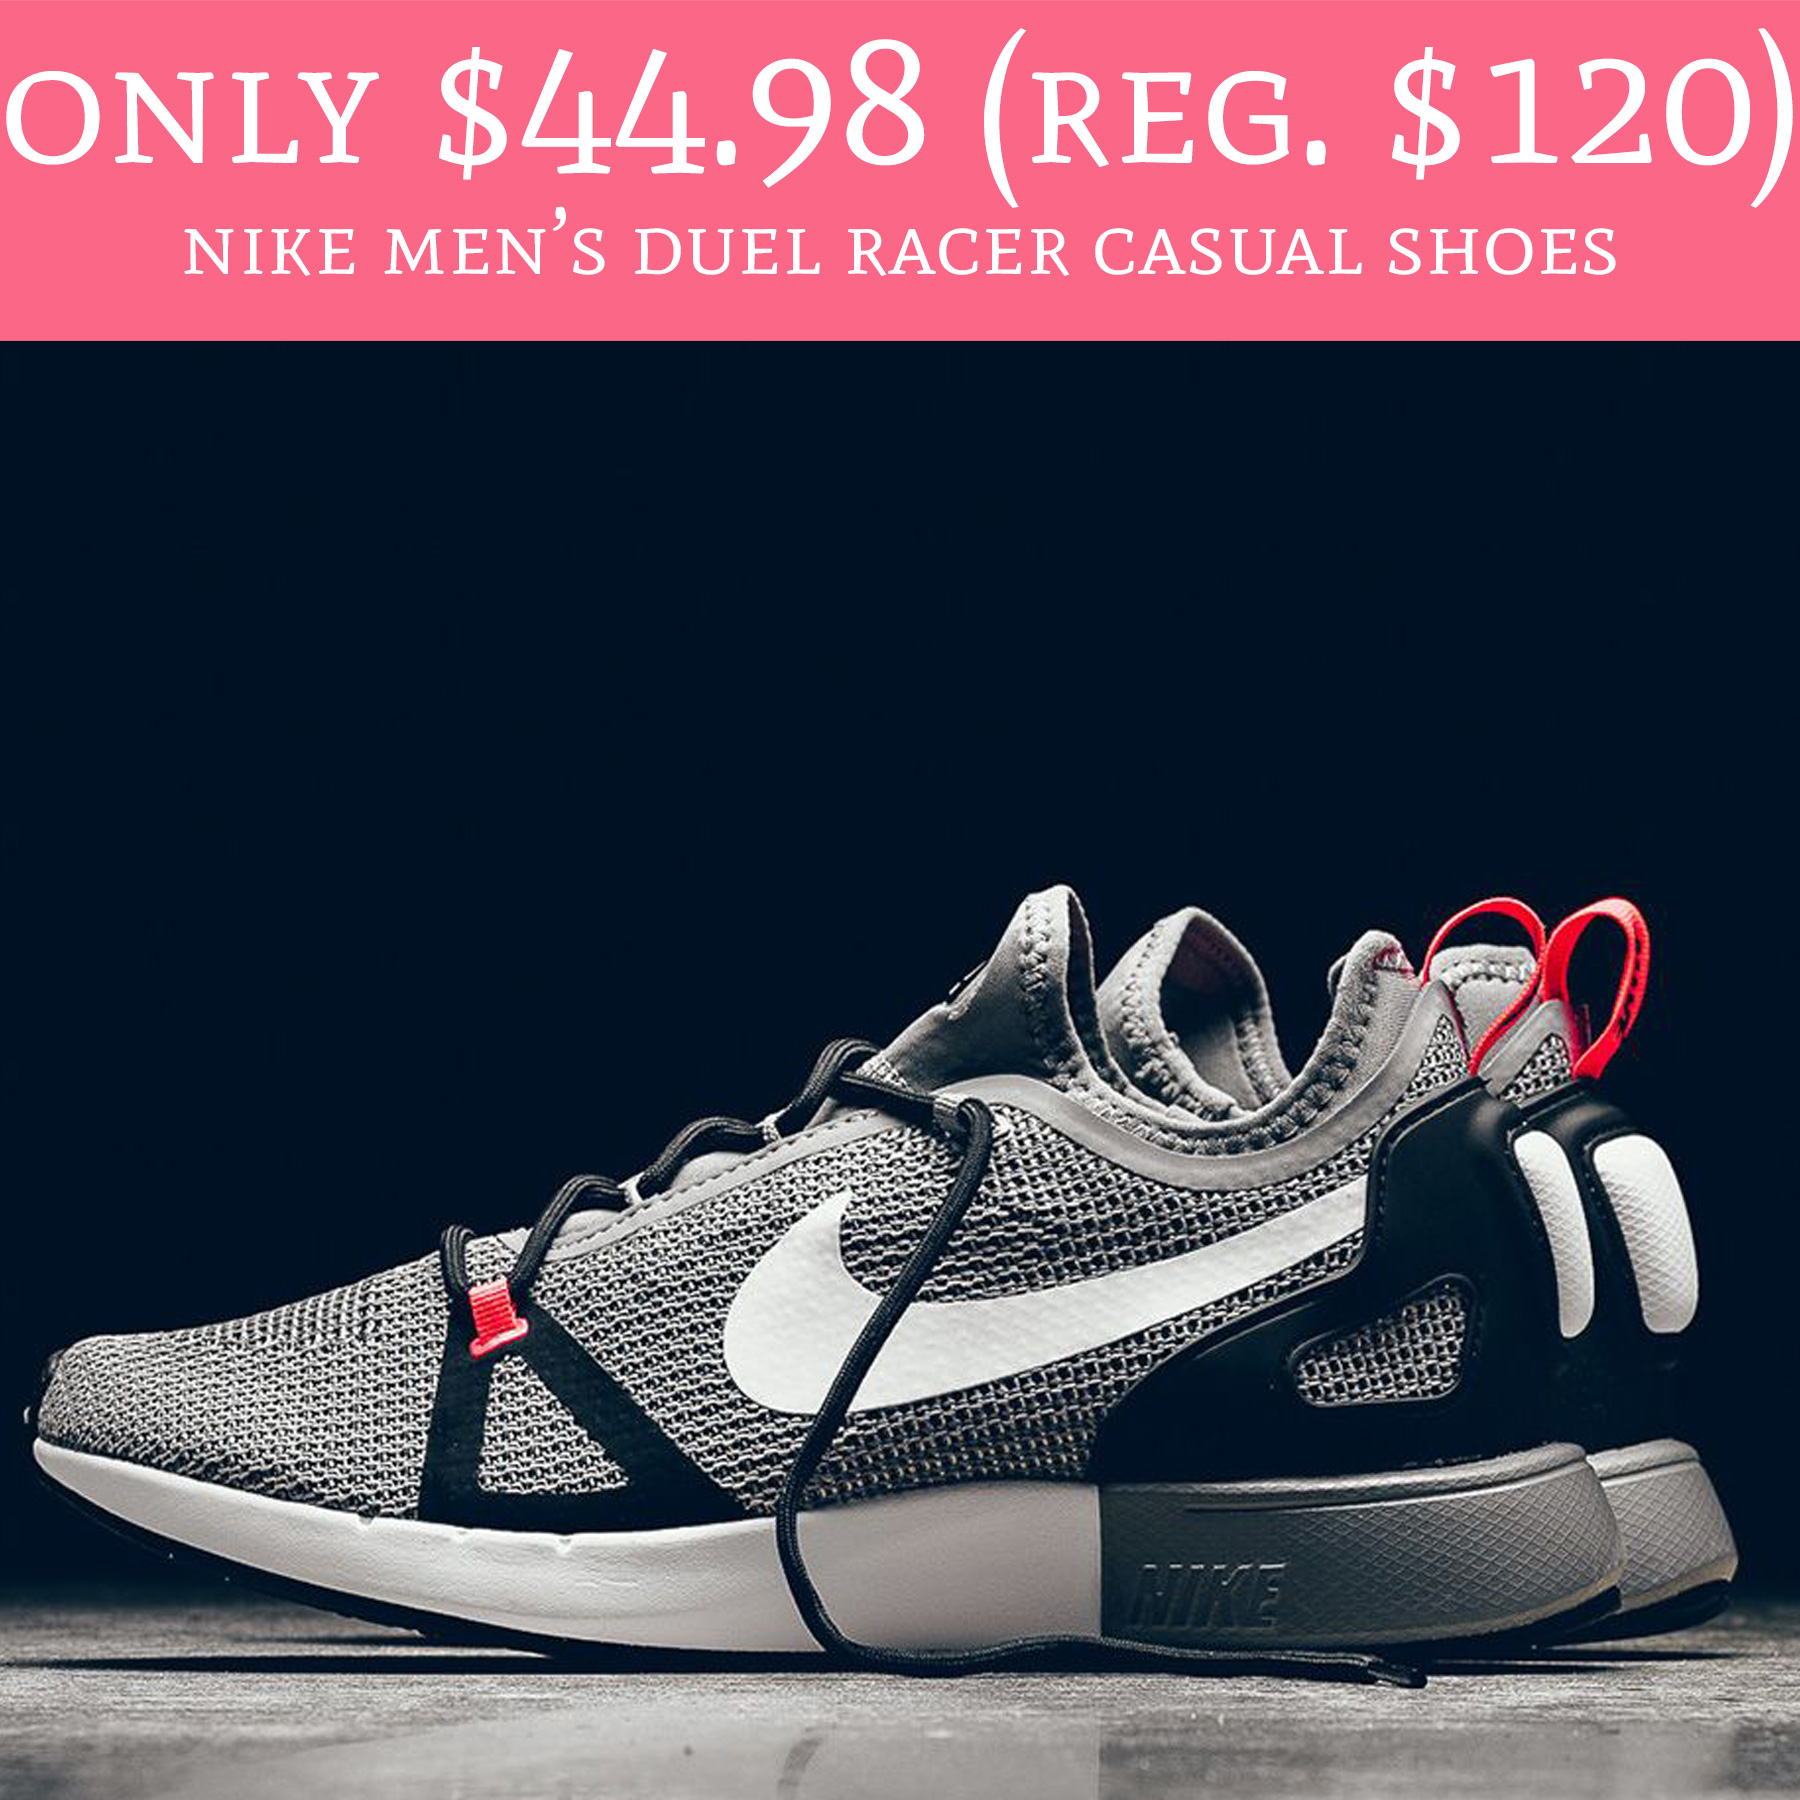 buy online a2346 58a1c Hint Fathers Day! Head over to FinishLine.com where you can order Nike  Mens Duel Racer Casual Shoes ...